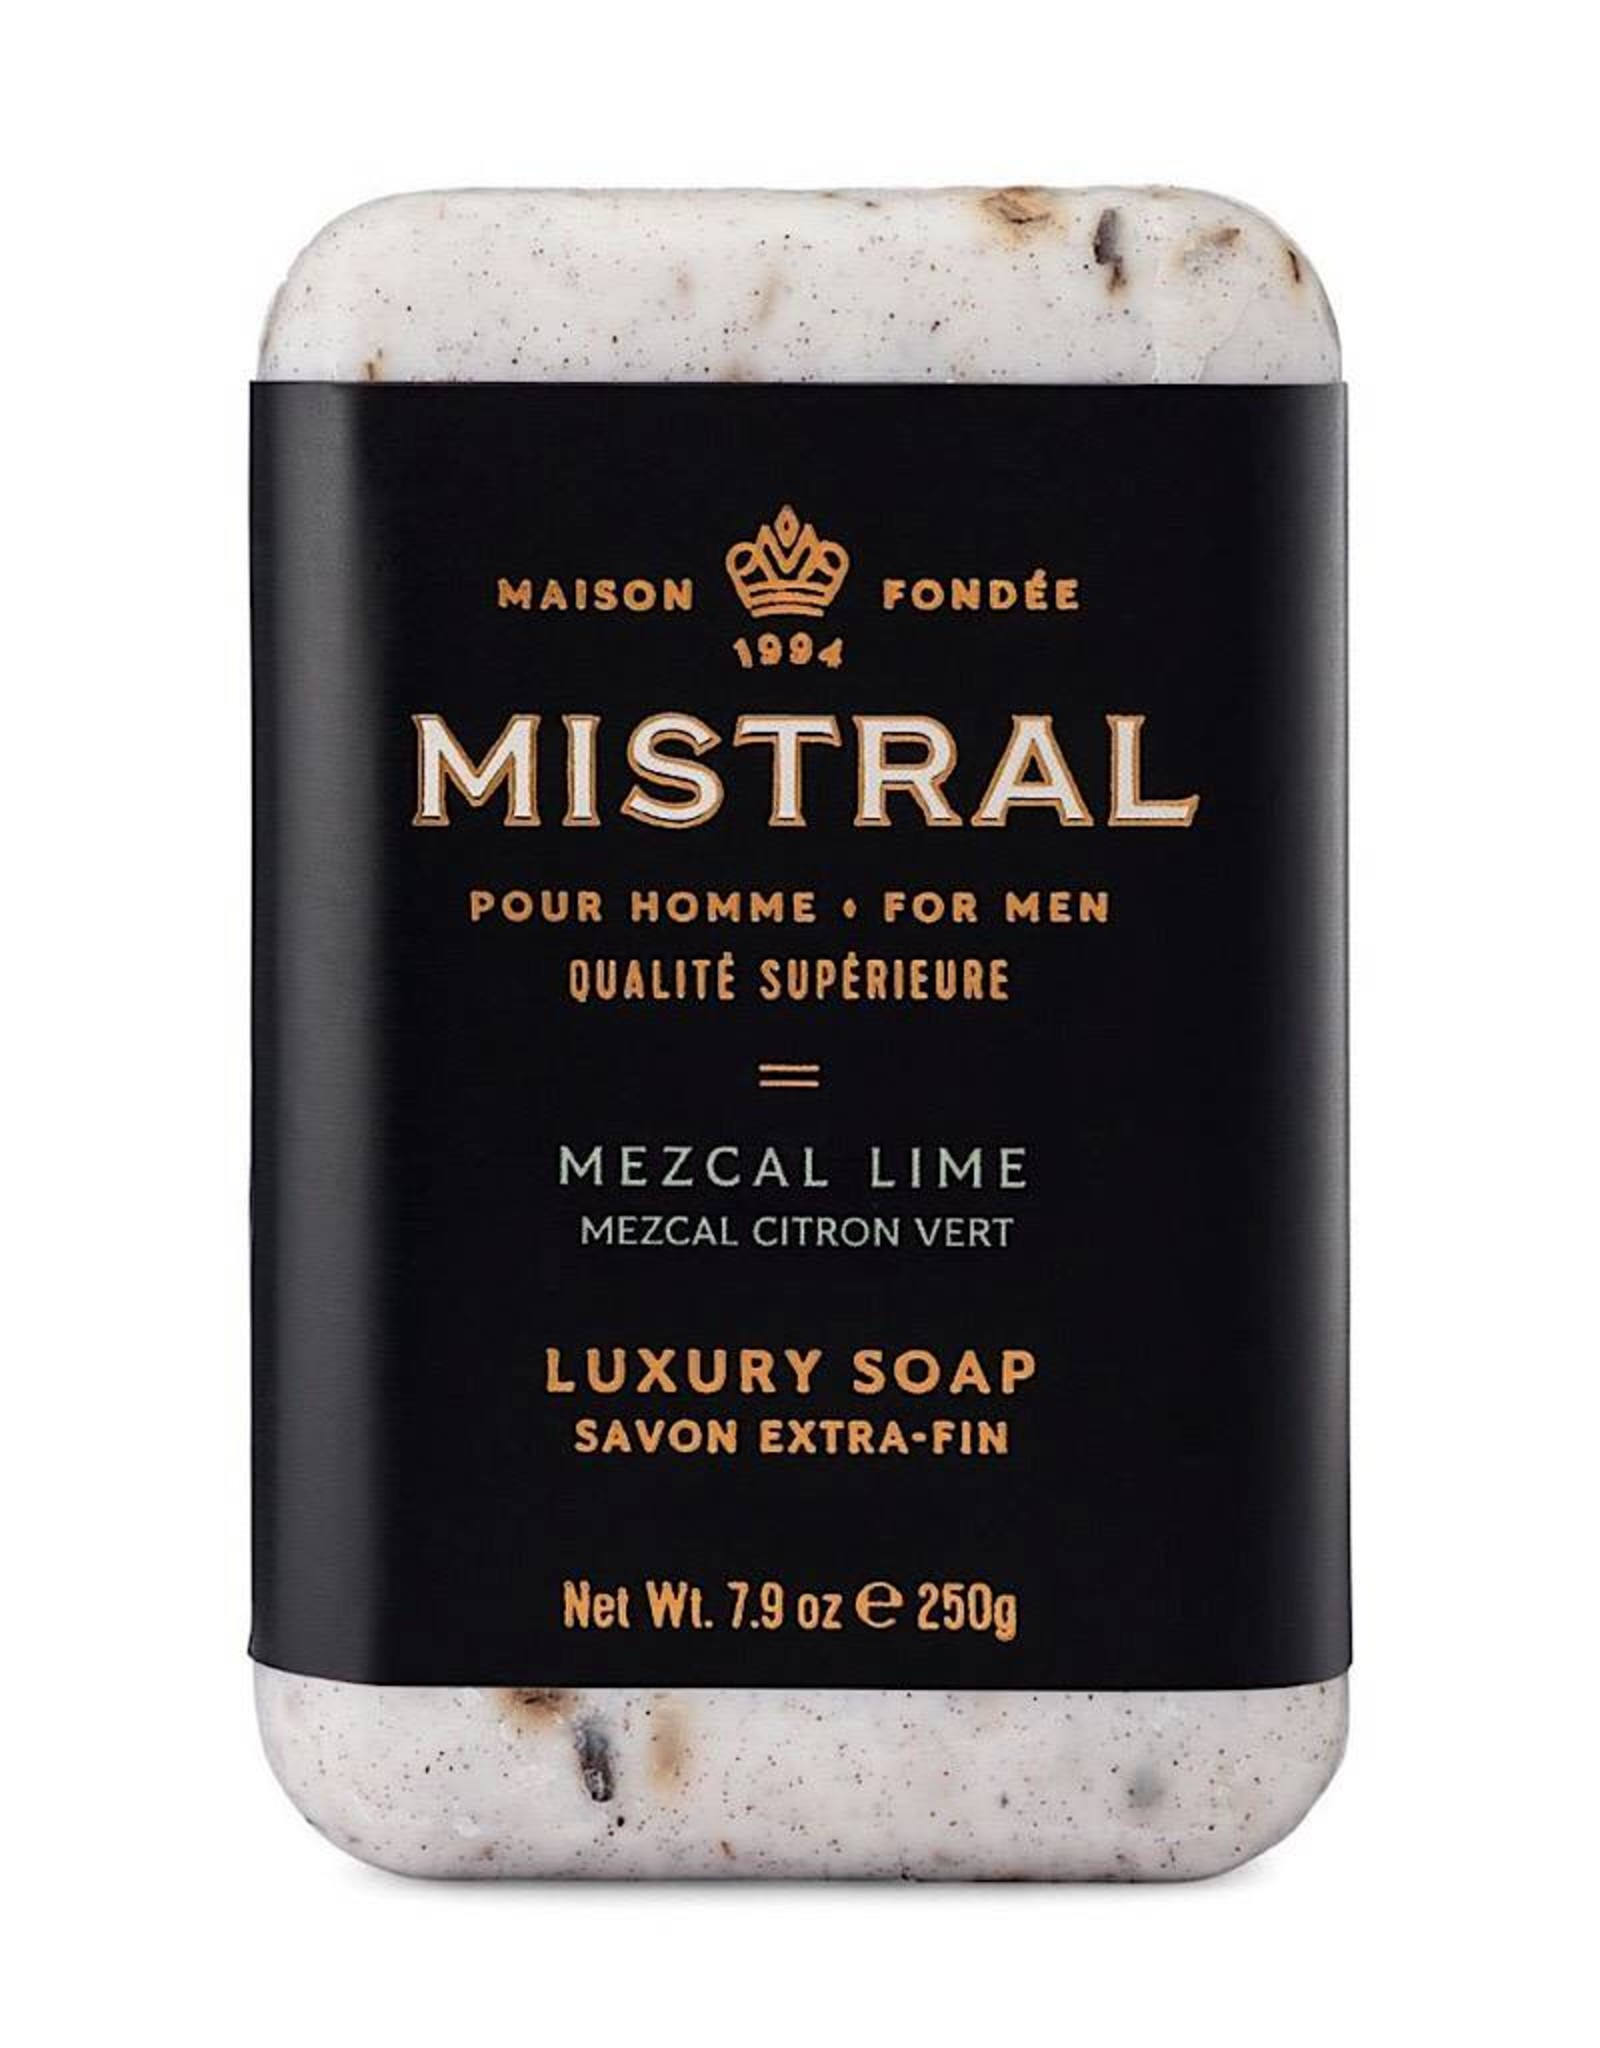 Mistral 250g Classic French Soaps For Men